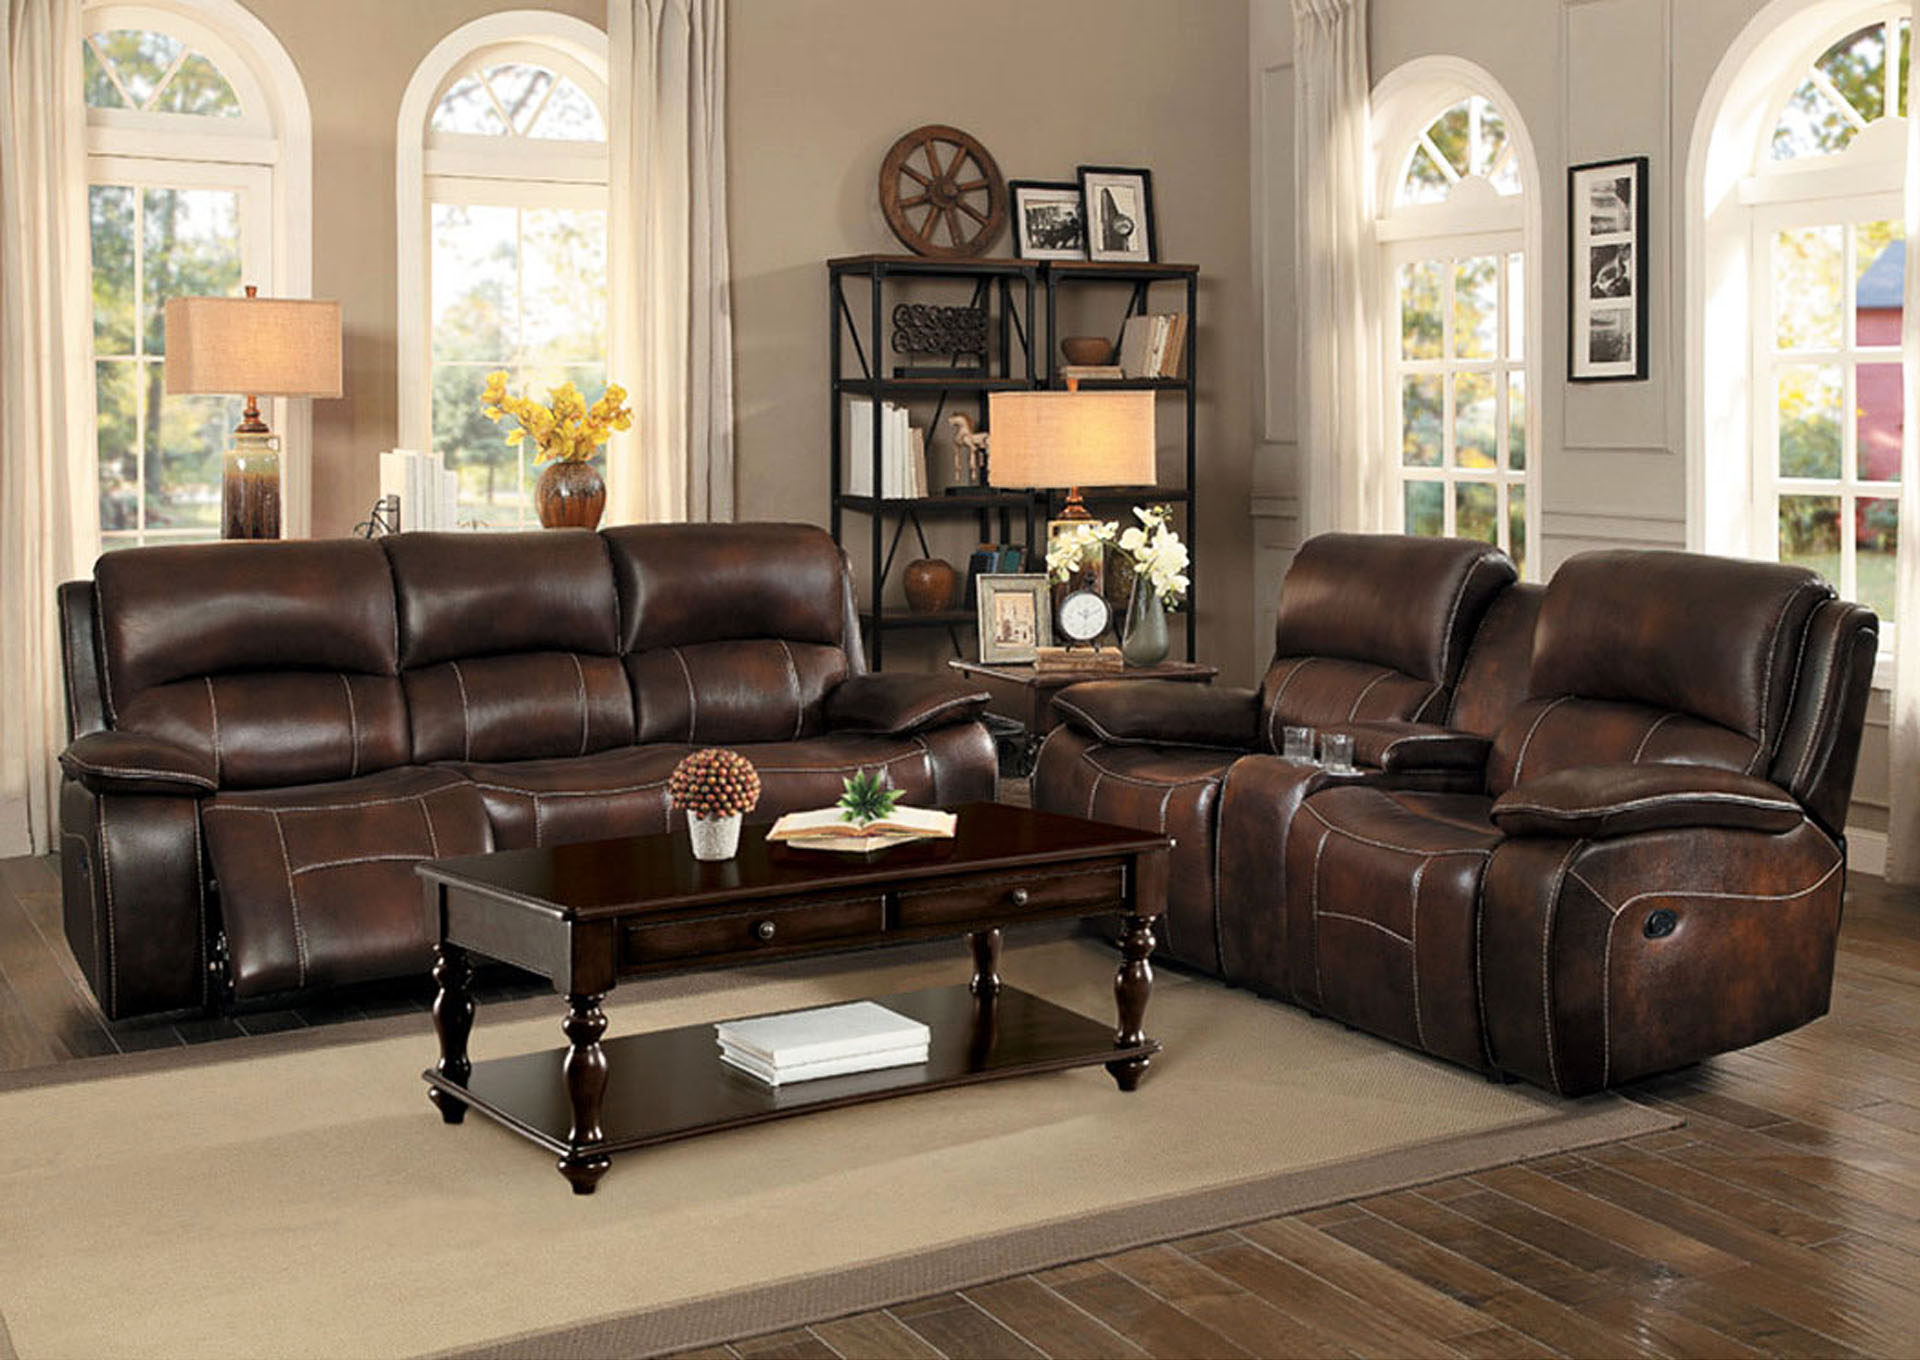 American Living Furniture Livermore Ca Double Reclining Loveseat